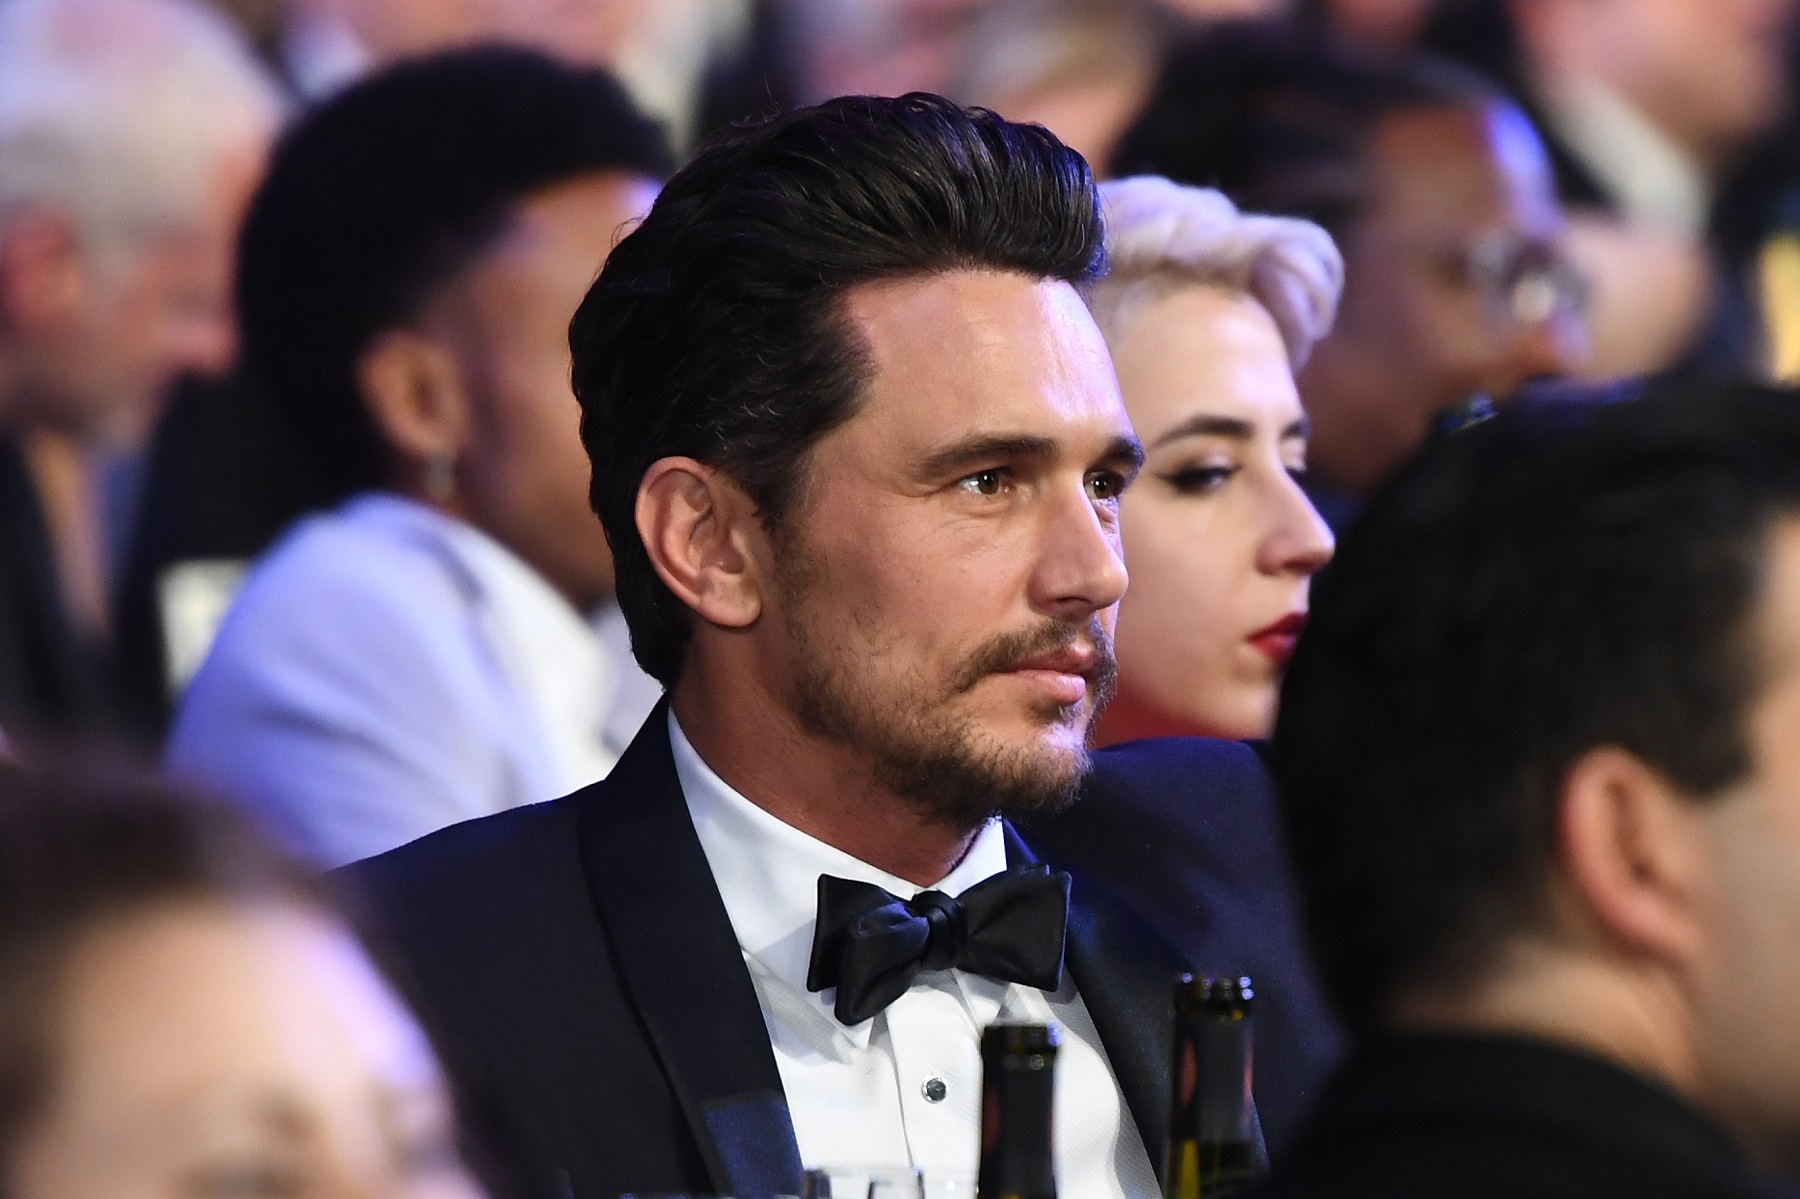 LOS ANGELES, CA - JANUARY 21:  Actor James Franco attends the 24th Annual Screen Actors Guild Awards at The Shrine Auditorium on January 21, 2018 in Los Angeles, California. 27522_009  (Photo by Dimitrios Kambouris/Getty Images for Turner)